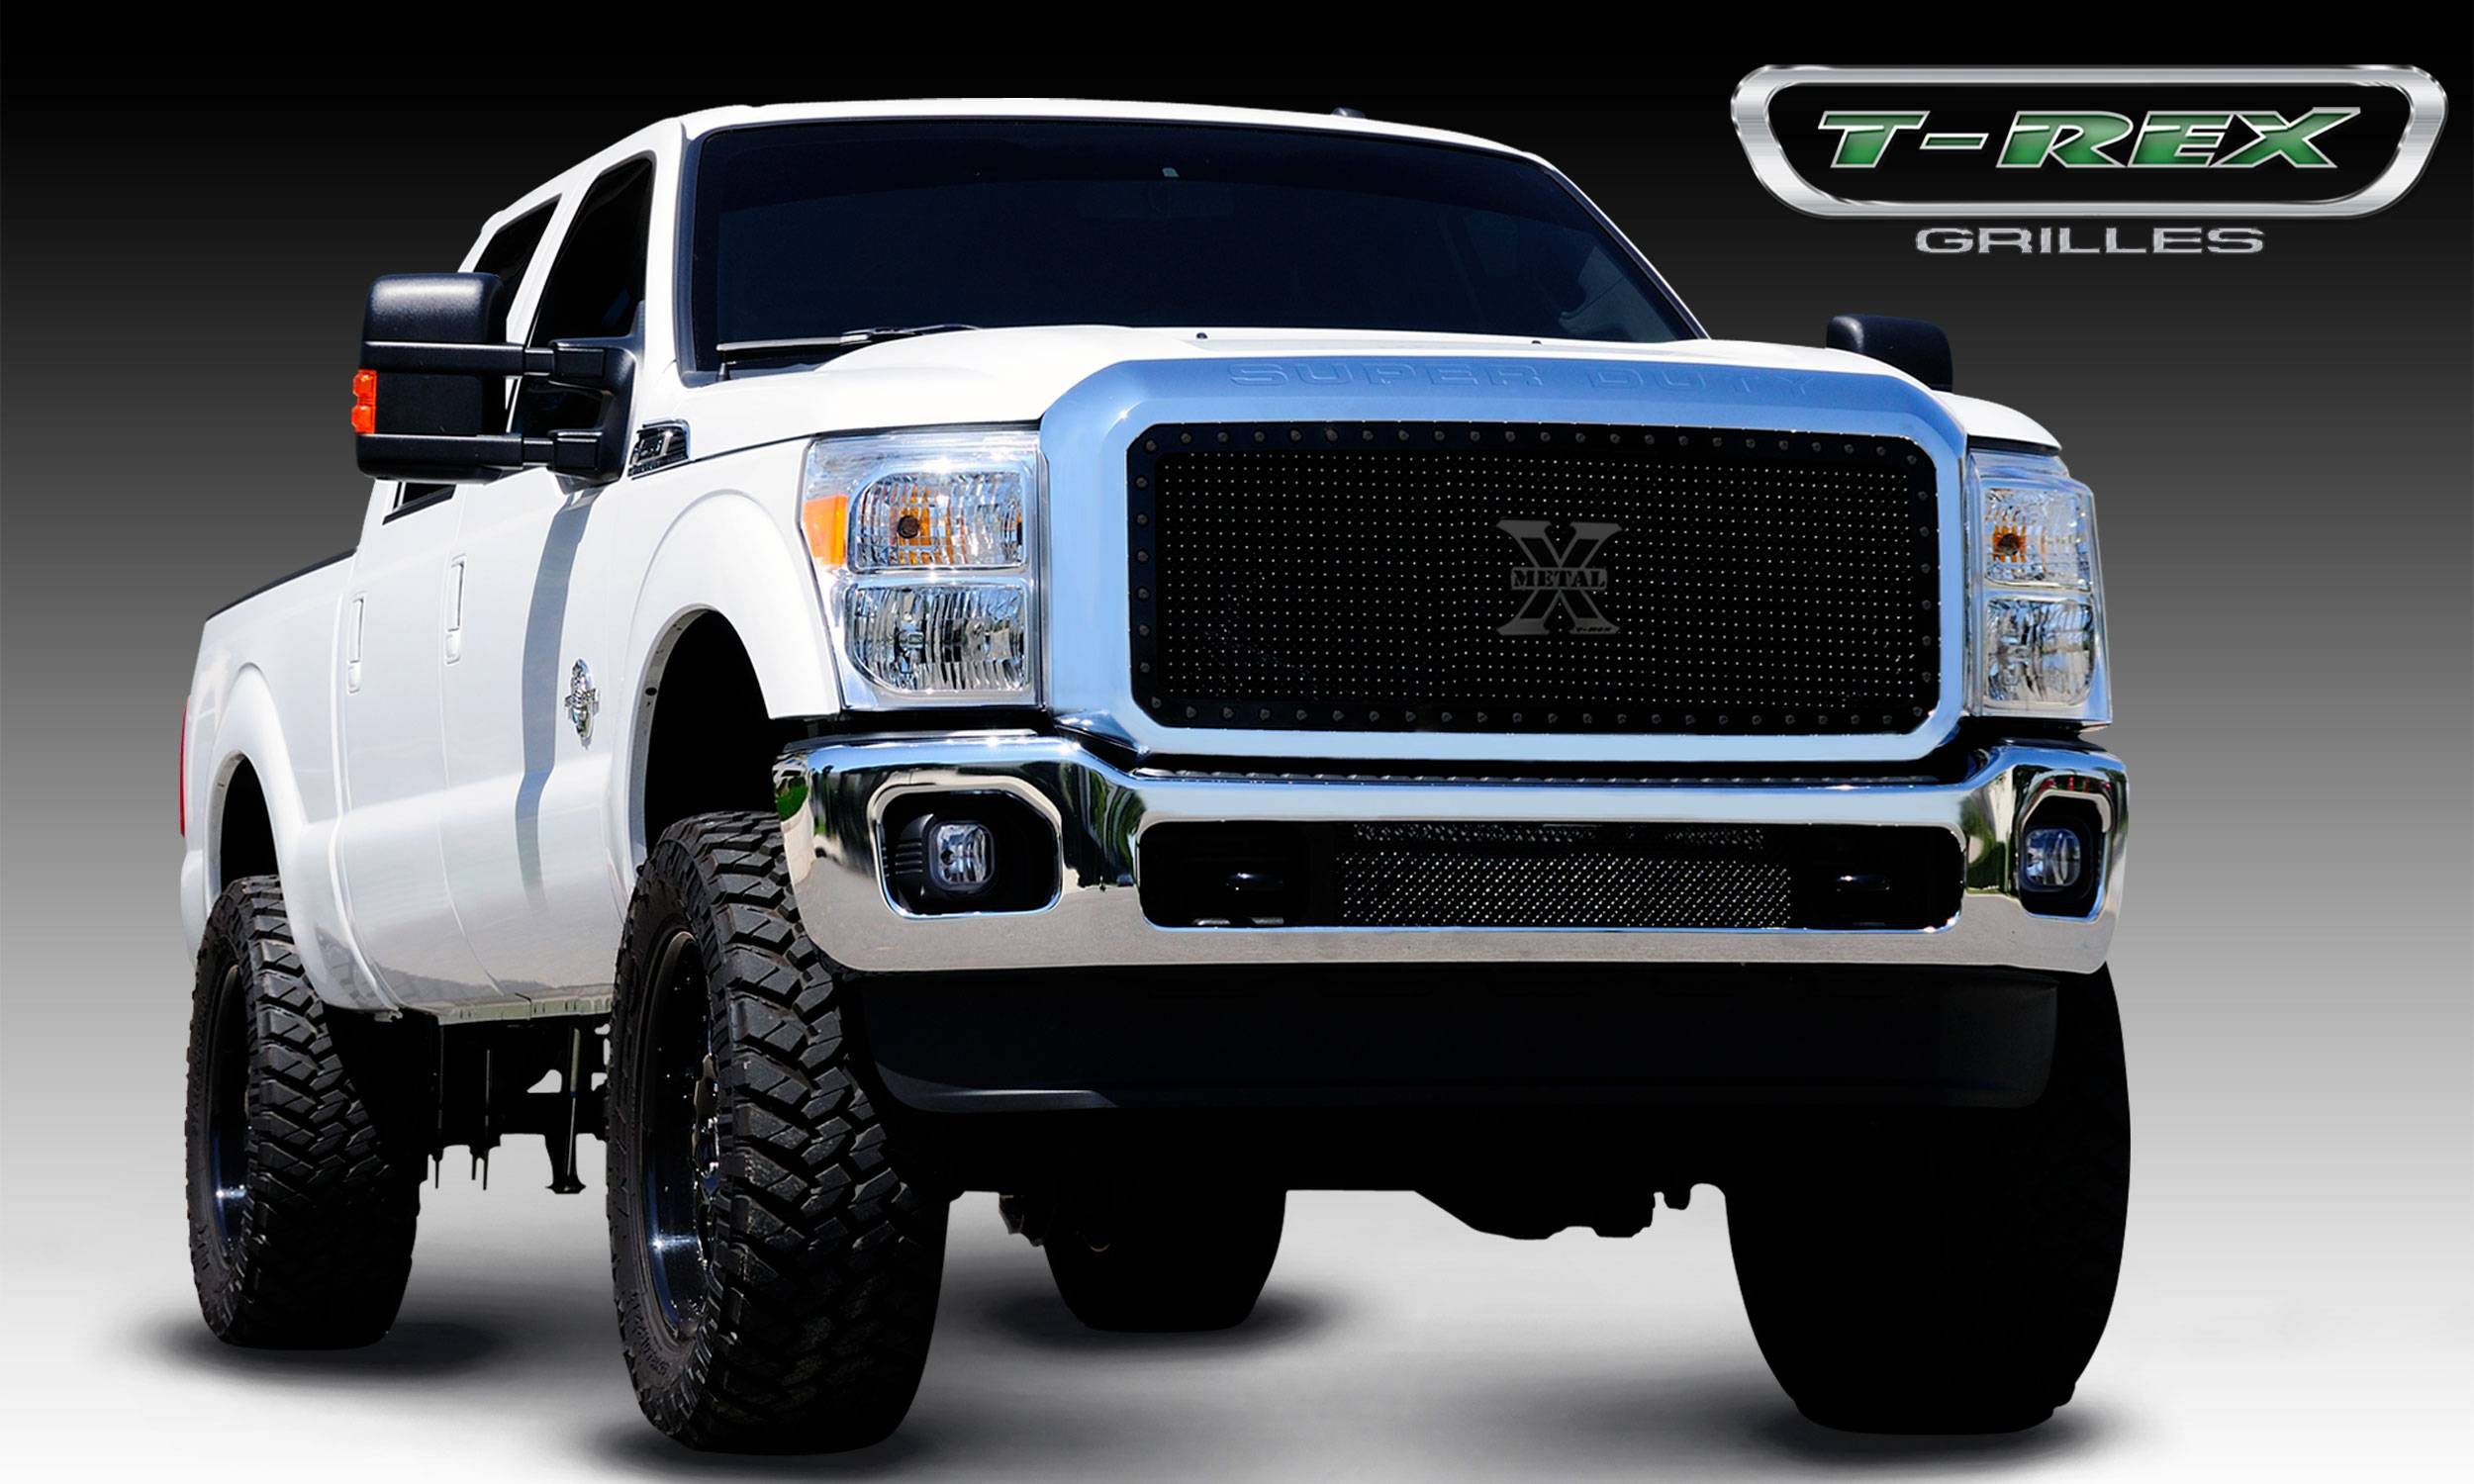 T-REX Grilles - Ford Super Duty Stealth Metal Black Studded Main Grille - 1 Pc - Pt # 6715461-BR